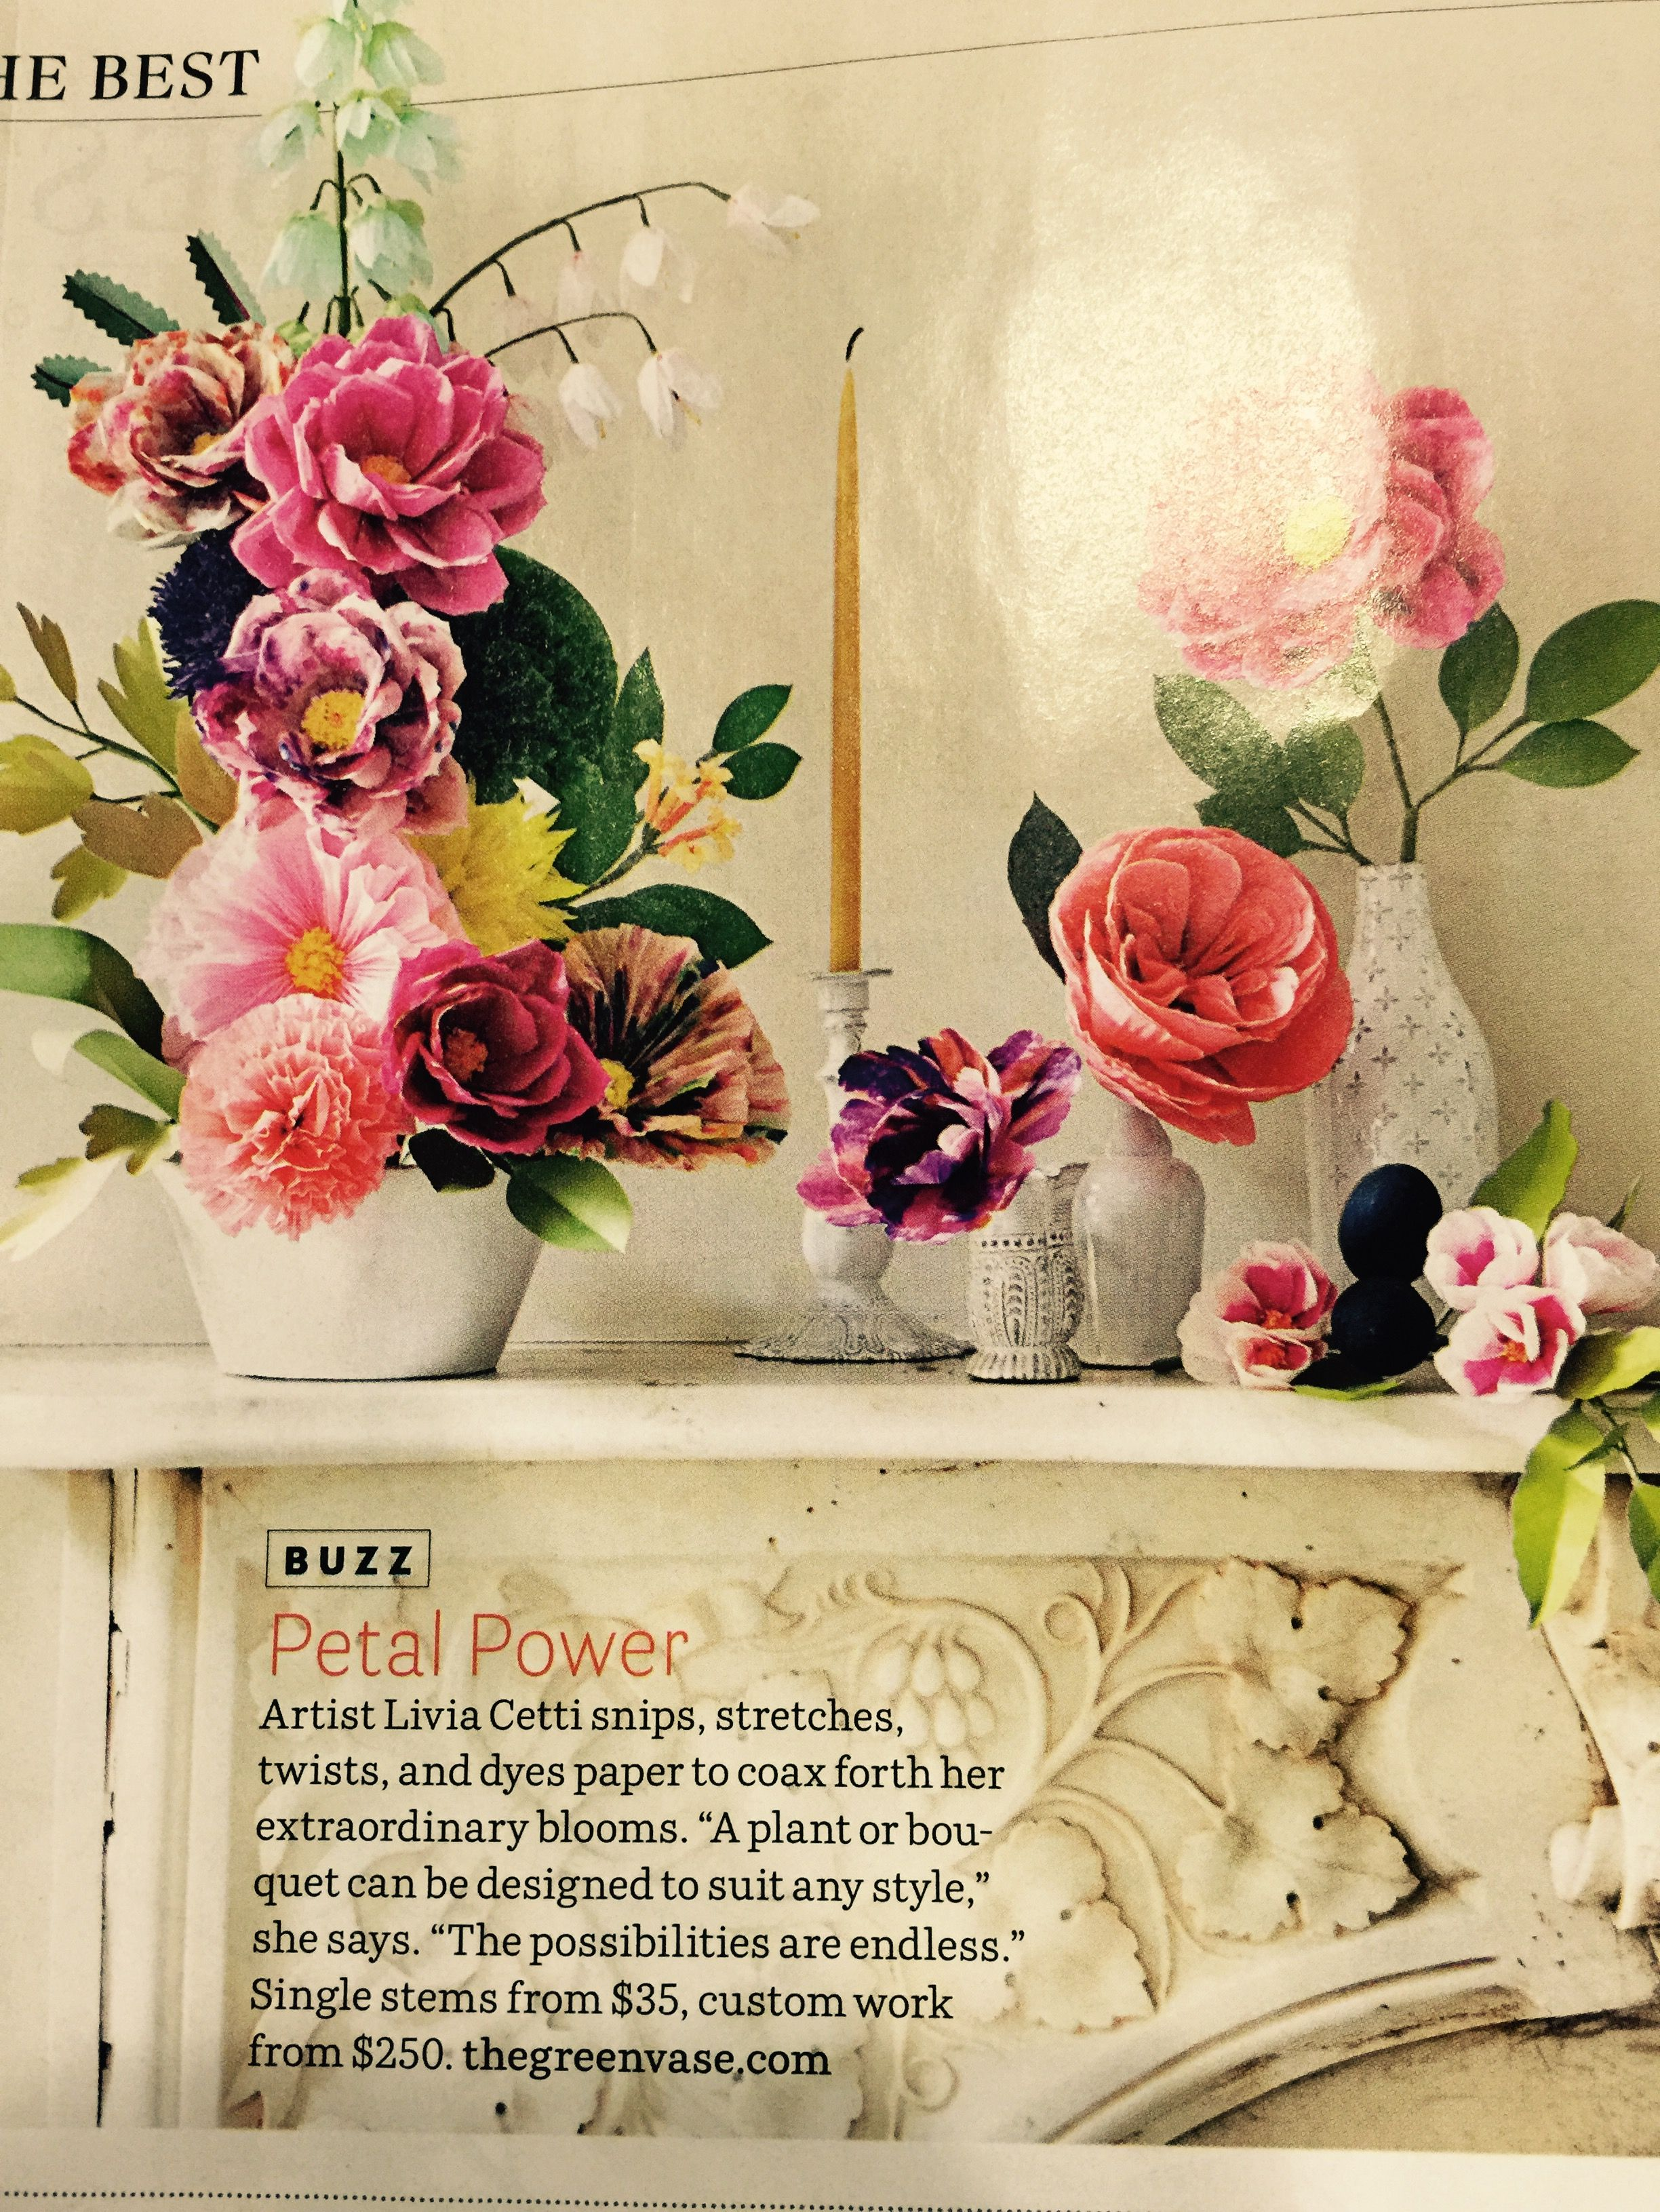 From House Beautiful 3/15.  Her website has book for sale on making these beautiful flowers.